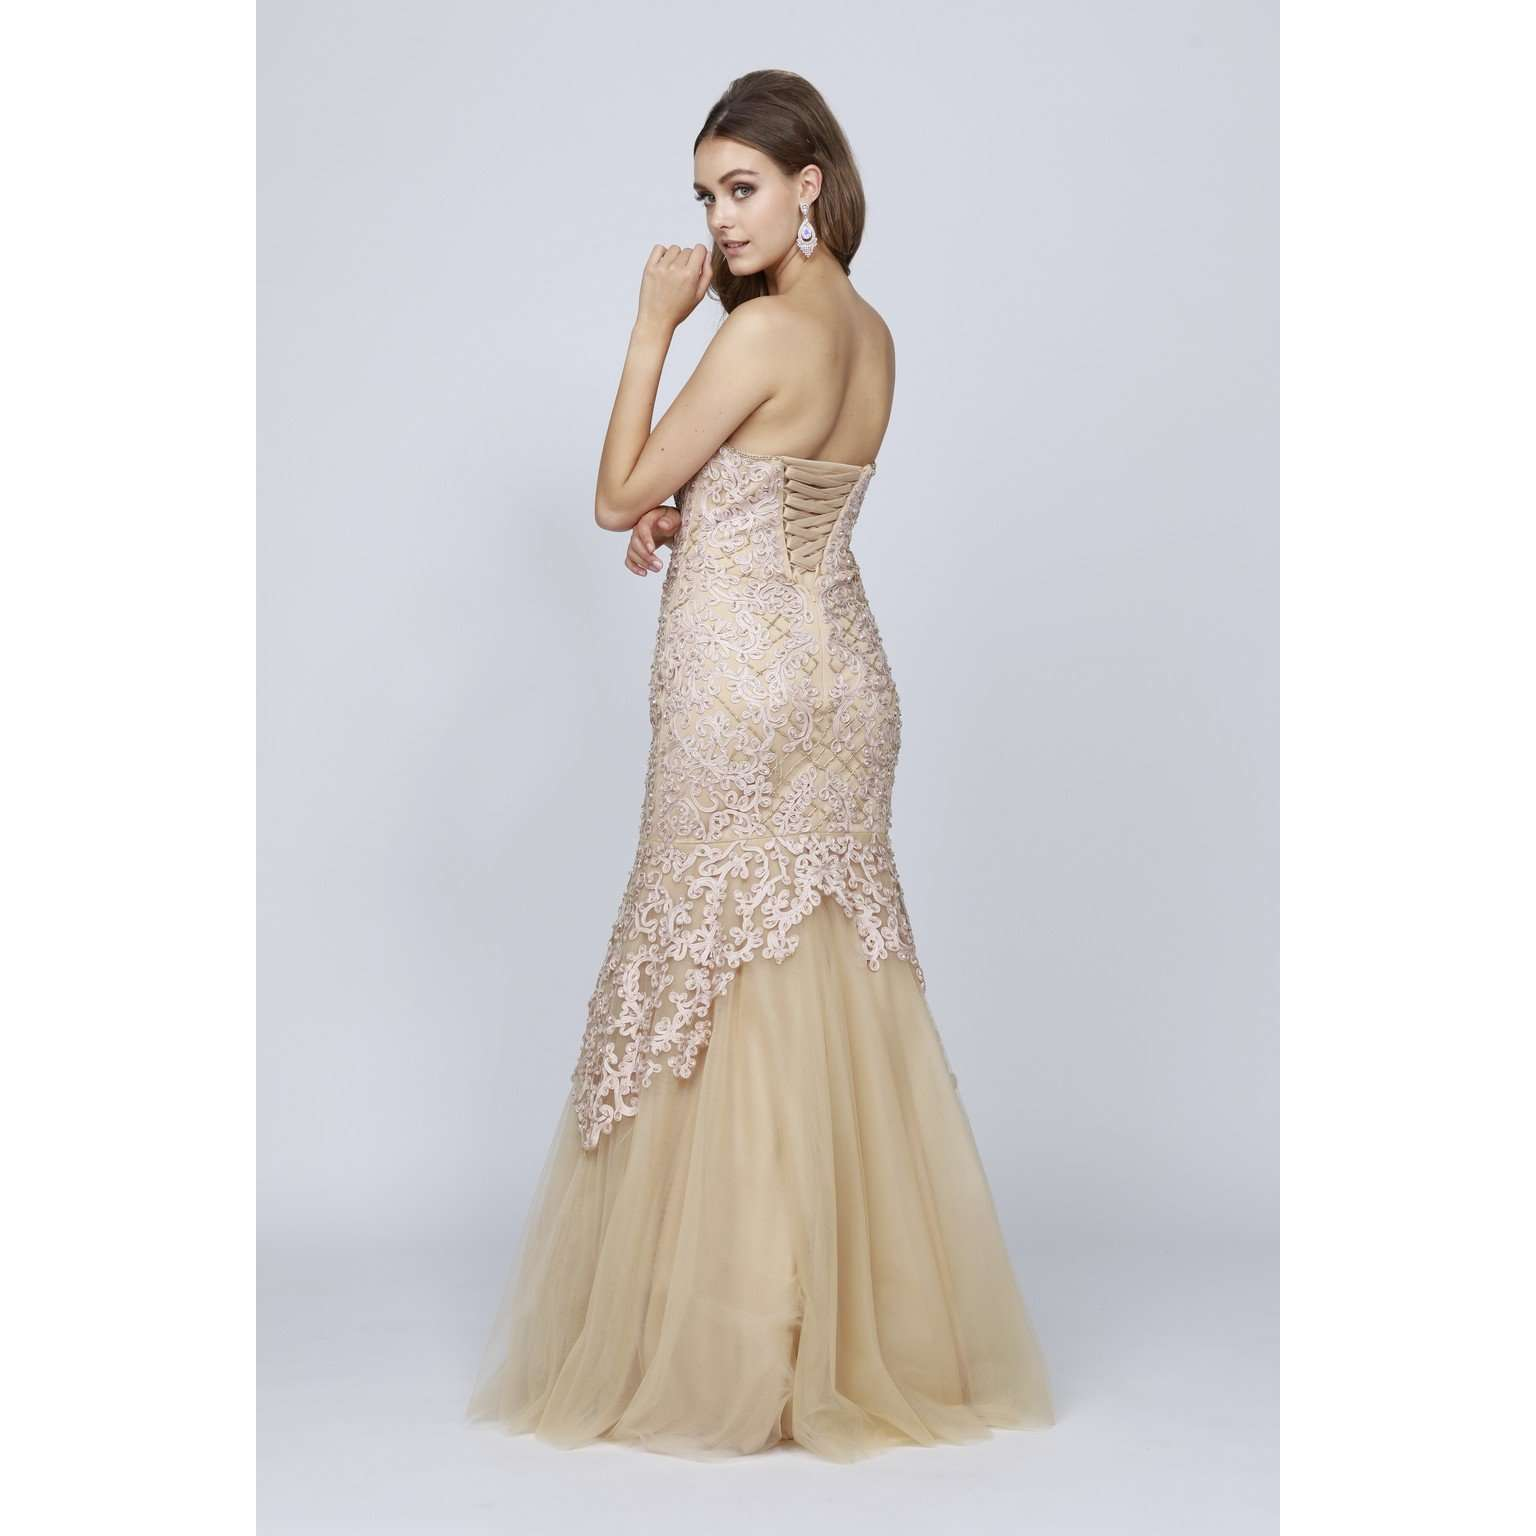 Beaded Embellished Lace Mermaid Prom Dress 644 - Julietdresses